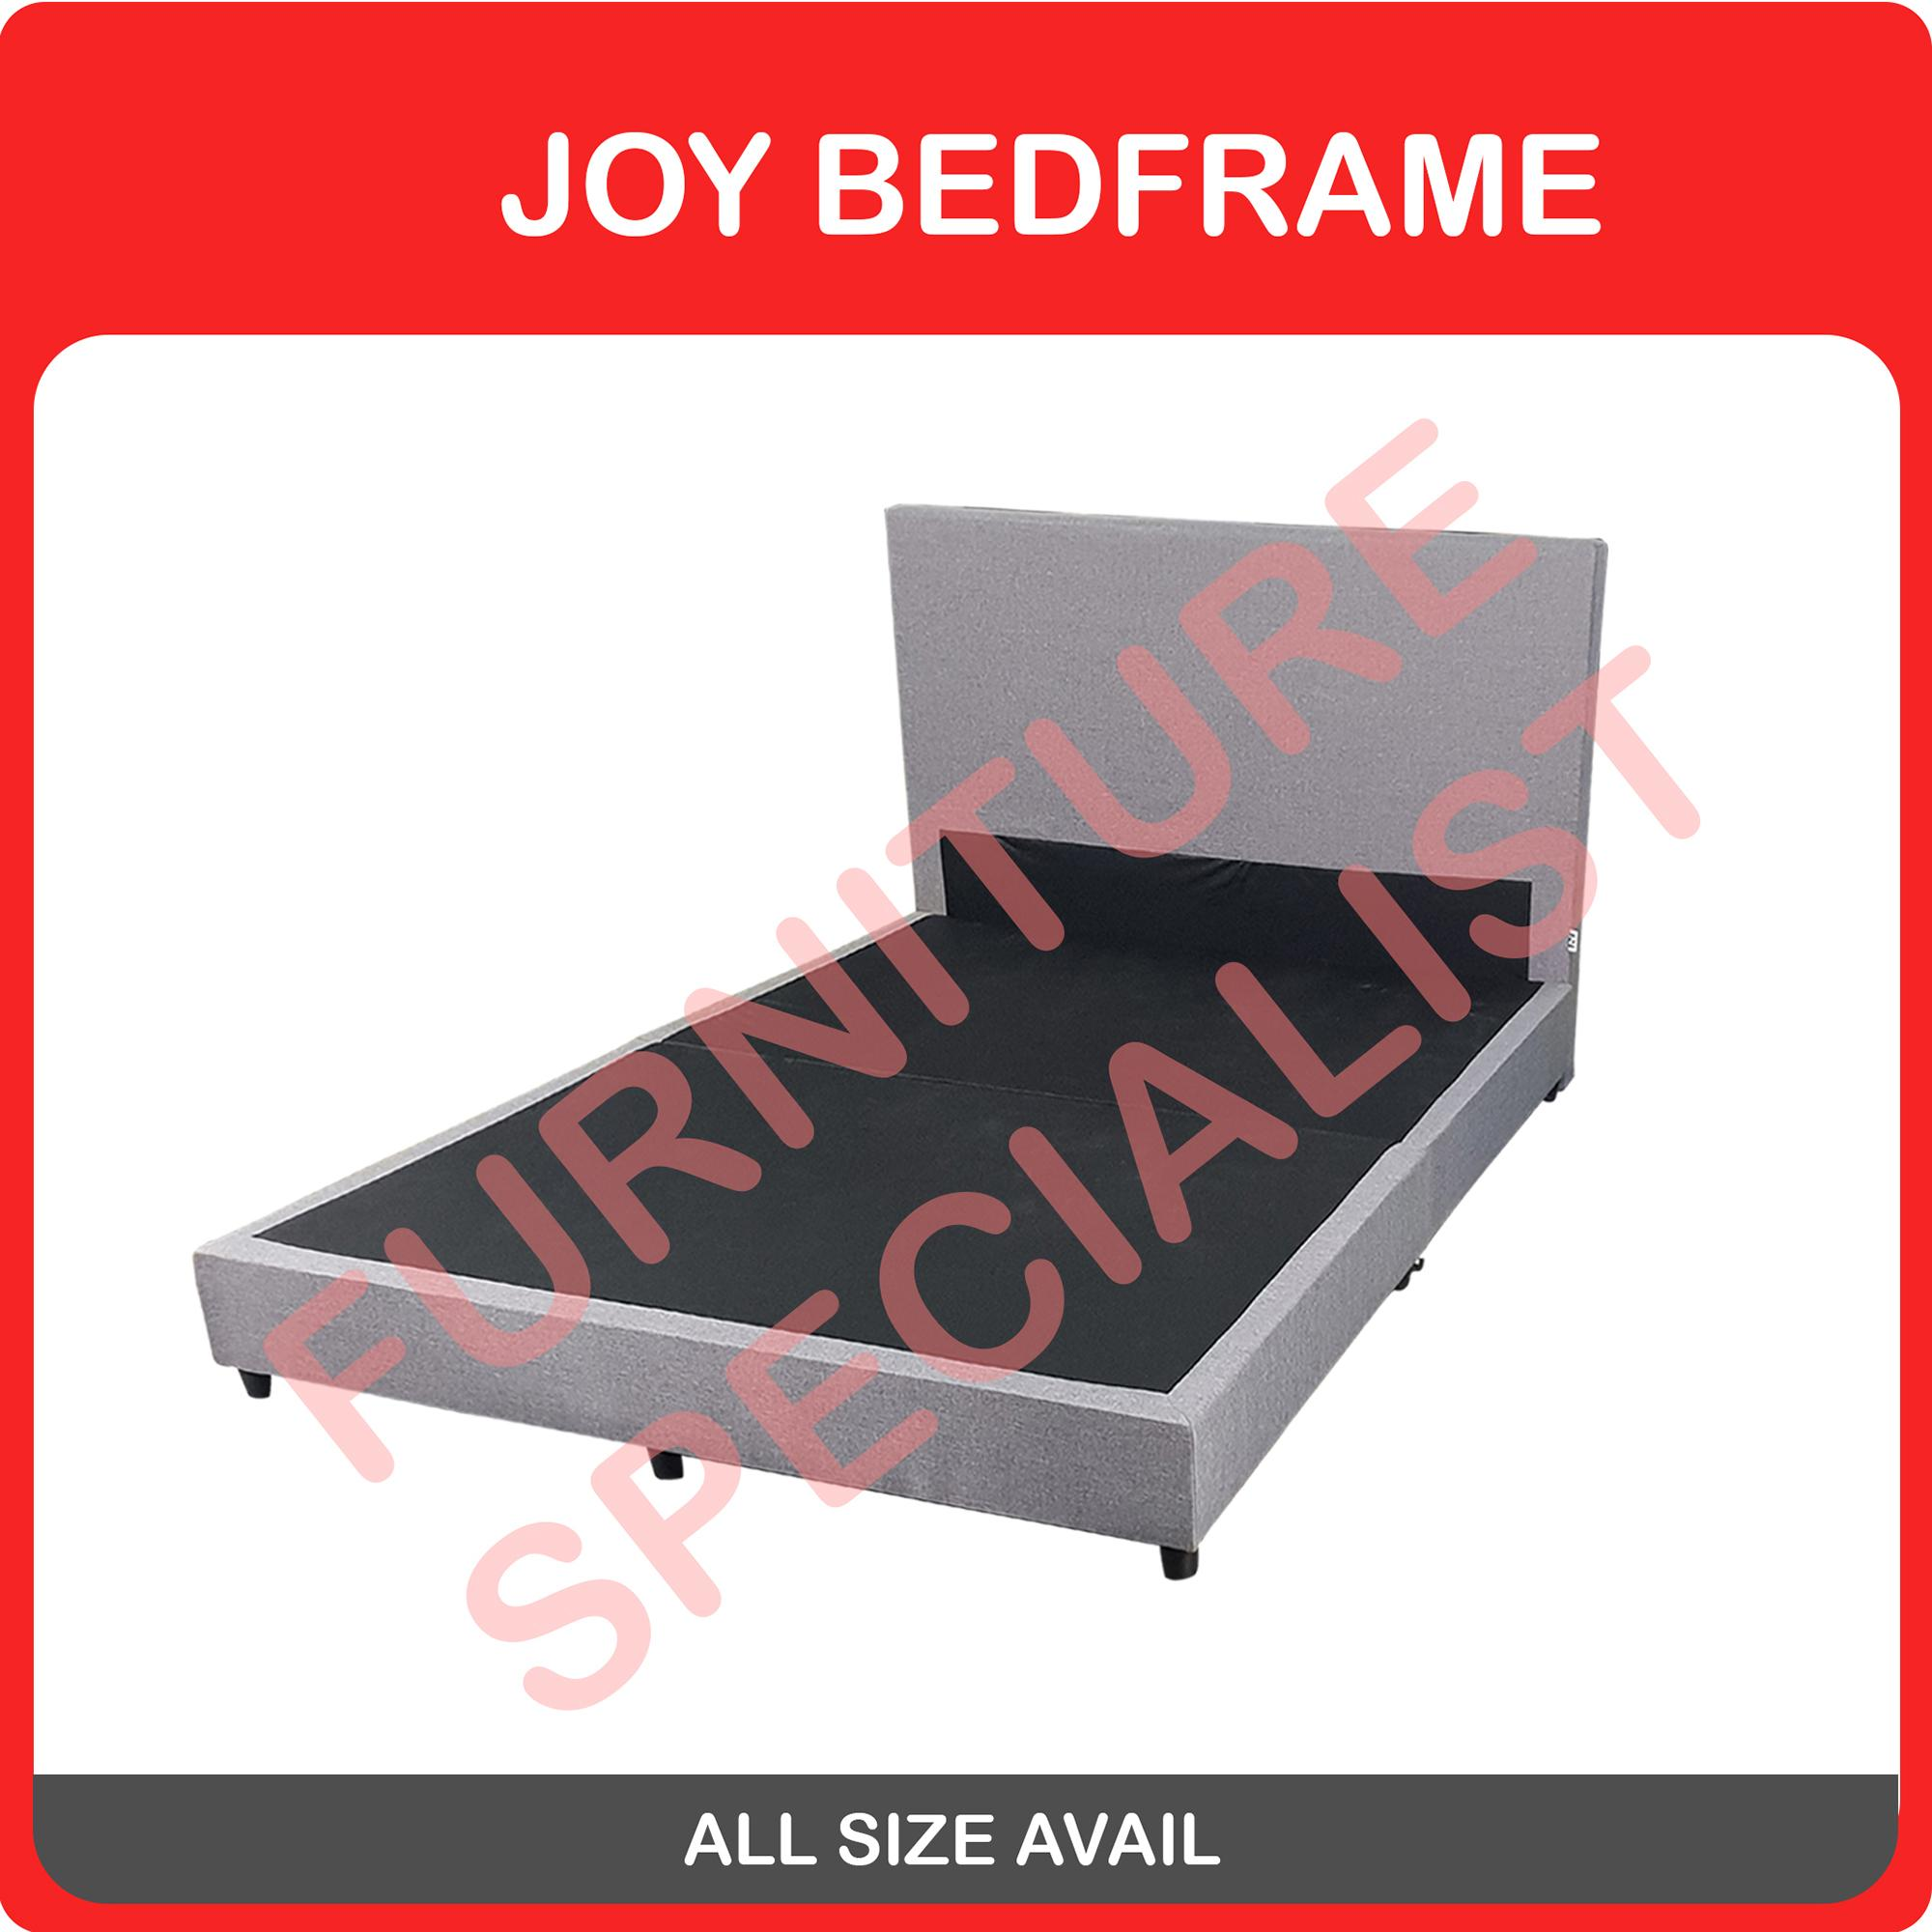 Joy Bed frame